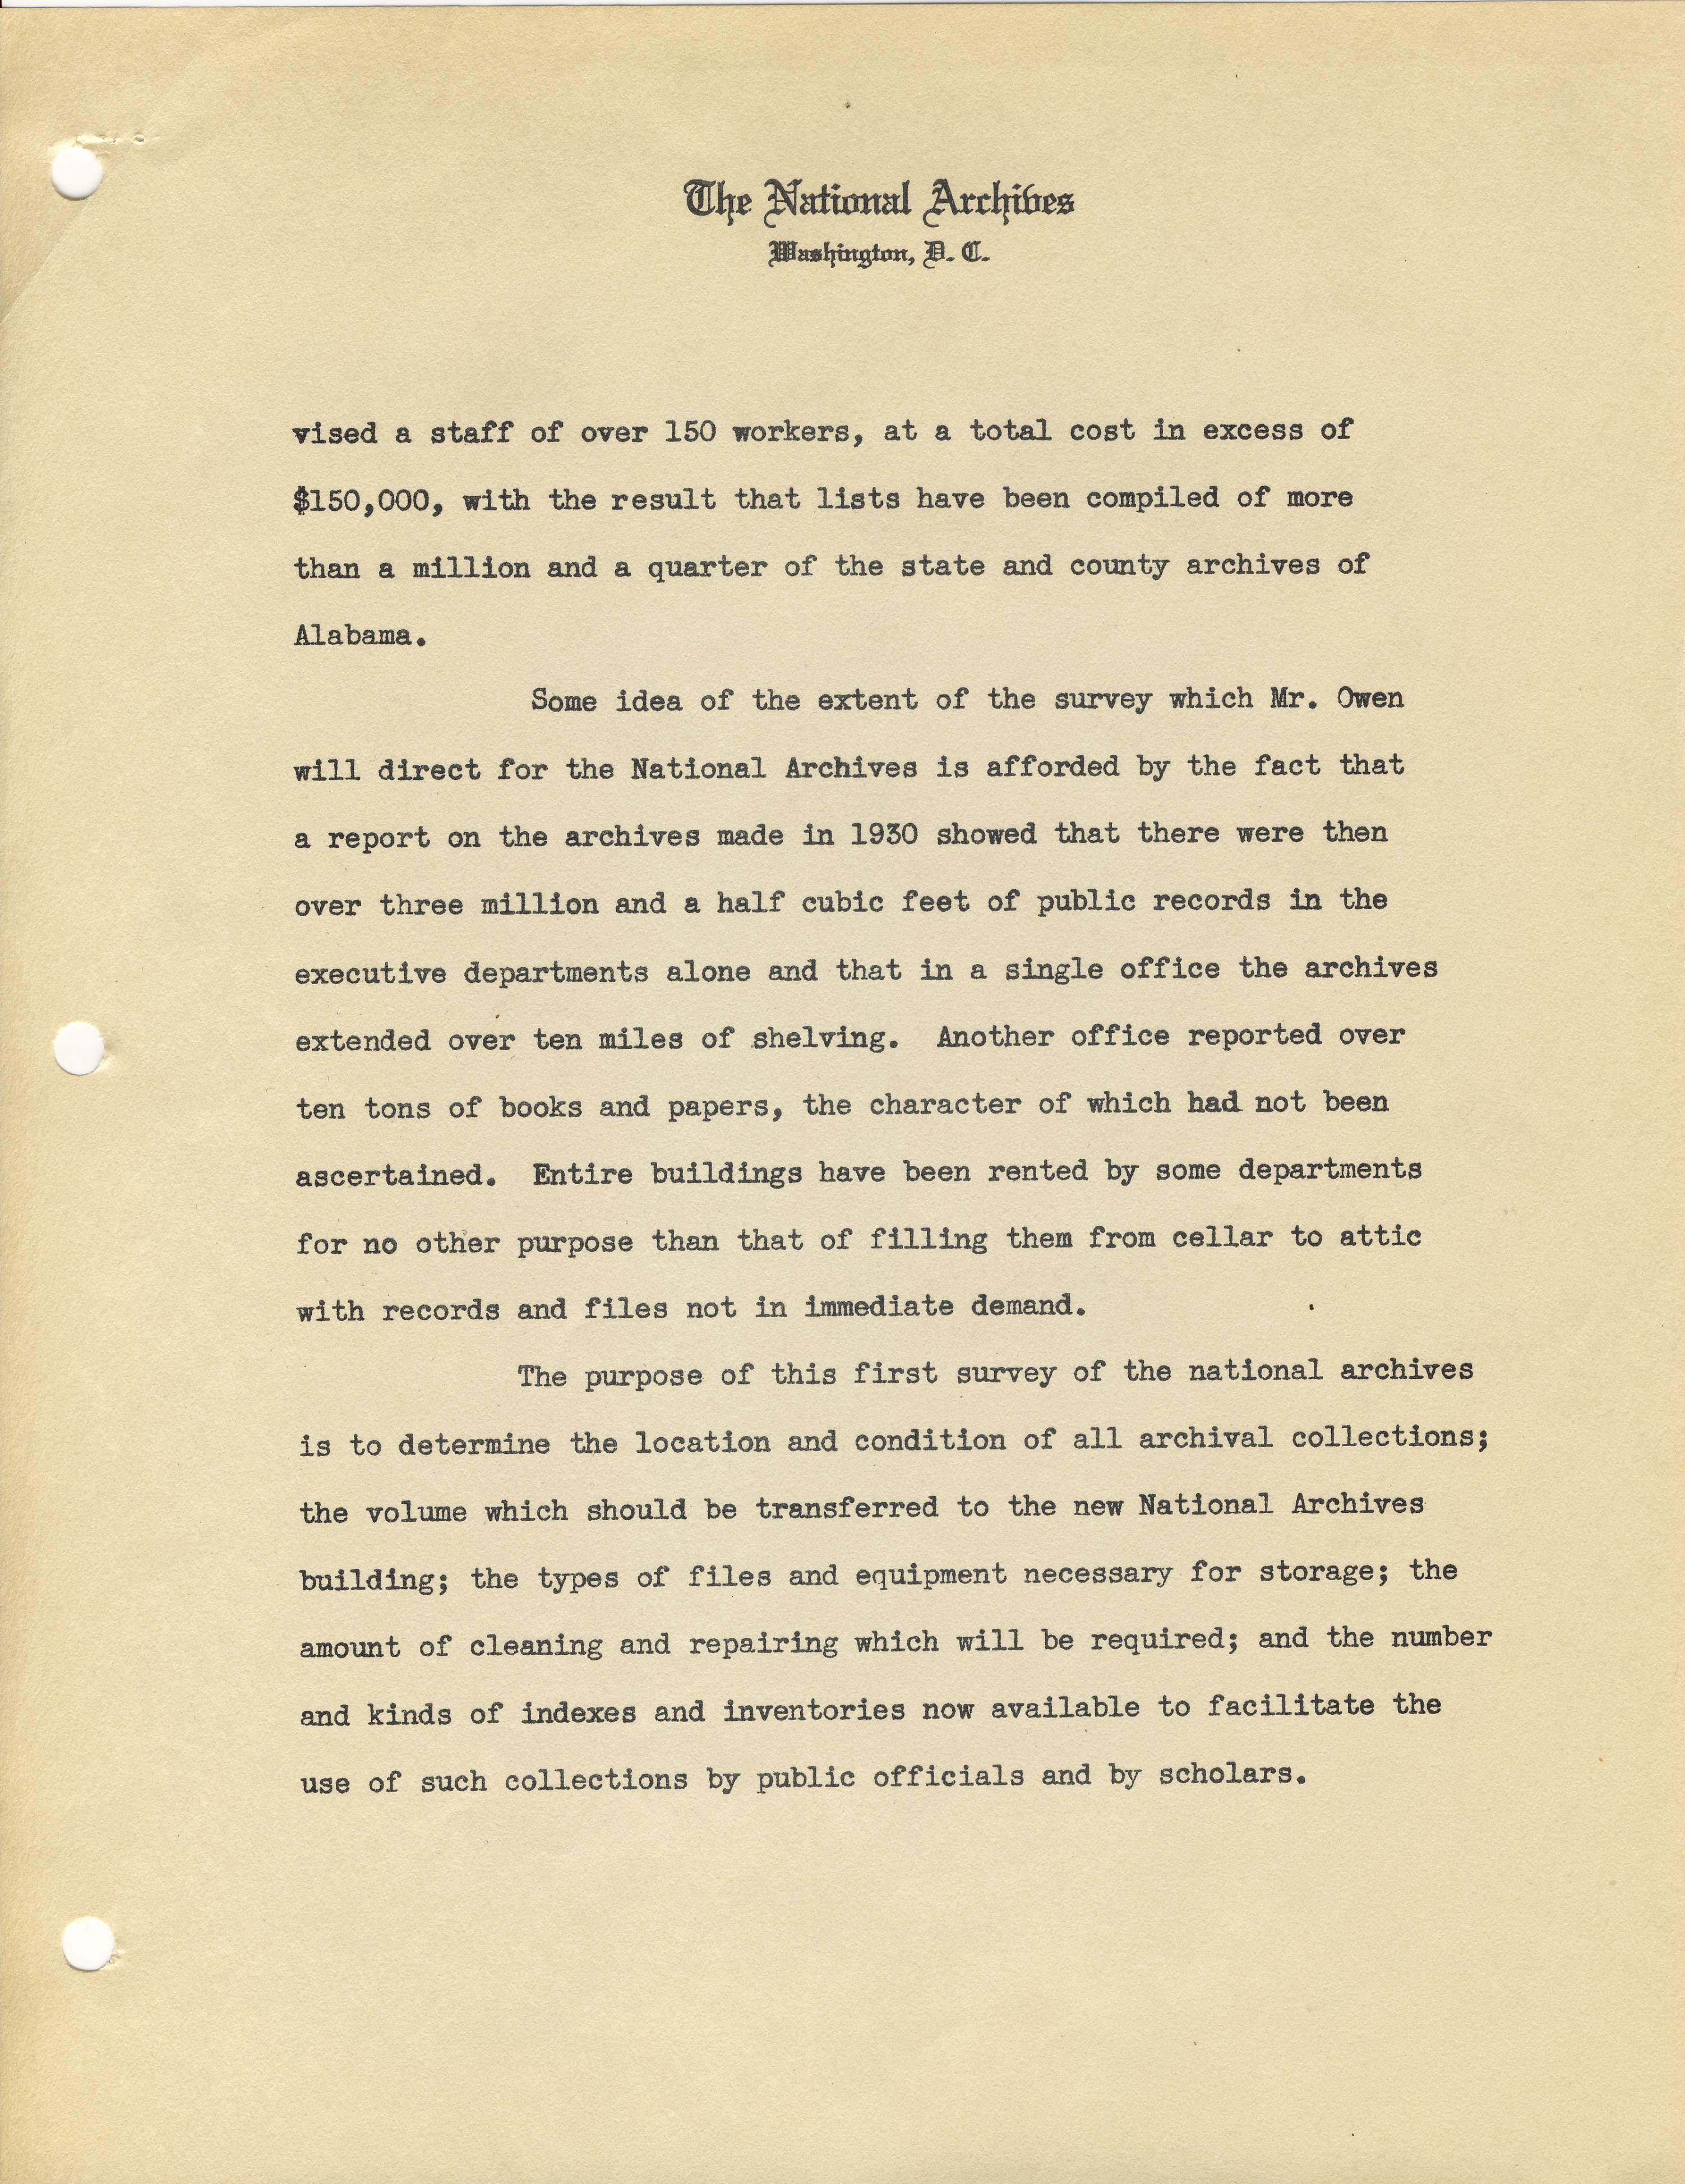 Announcement of DC Records Survey, 1935, page 2 - RG 64, A1 34, file Memoranda and Press Releases of the Archivist 1935-1936.jpg